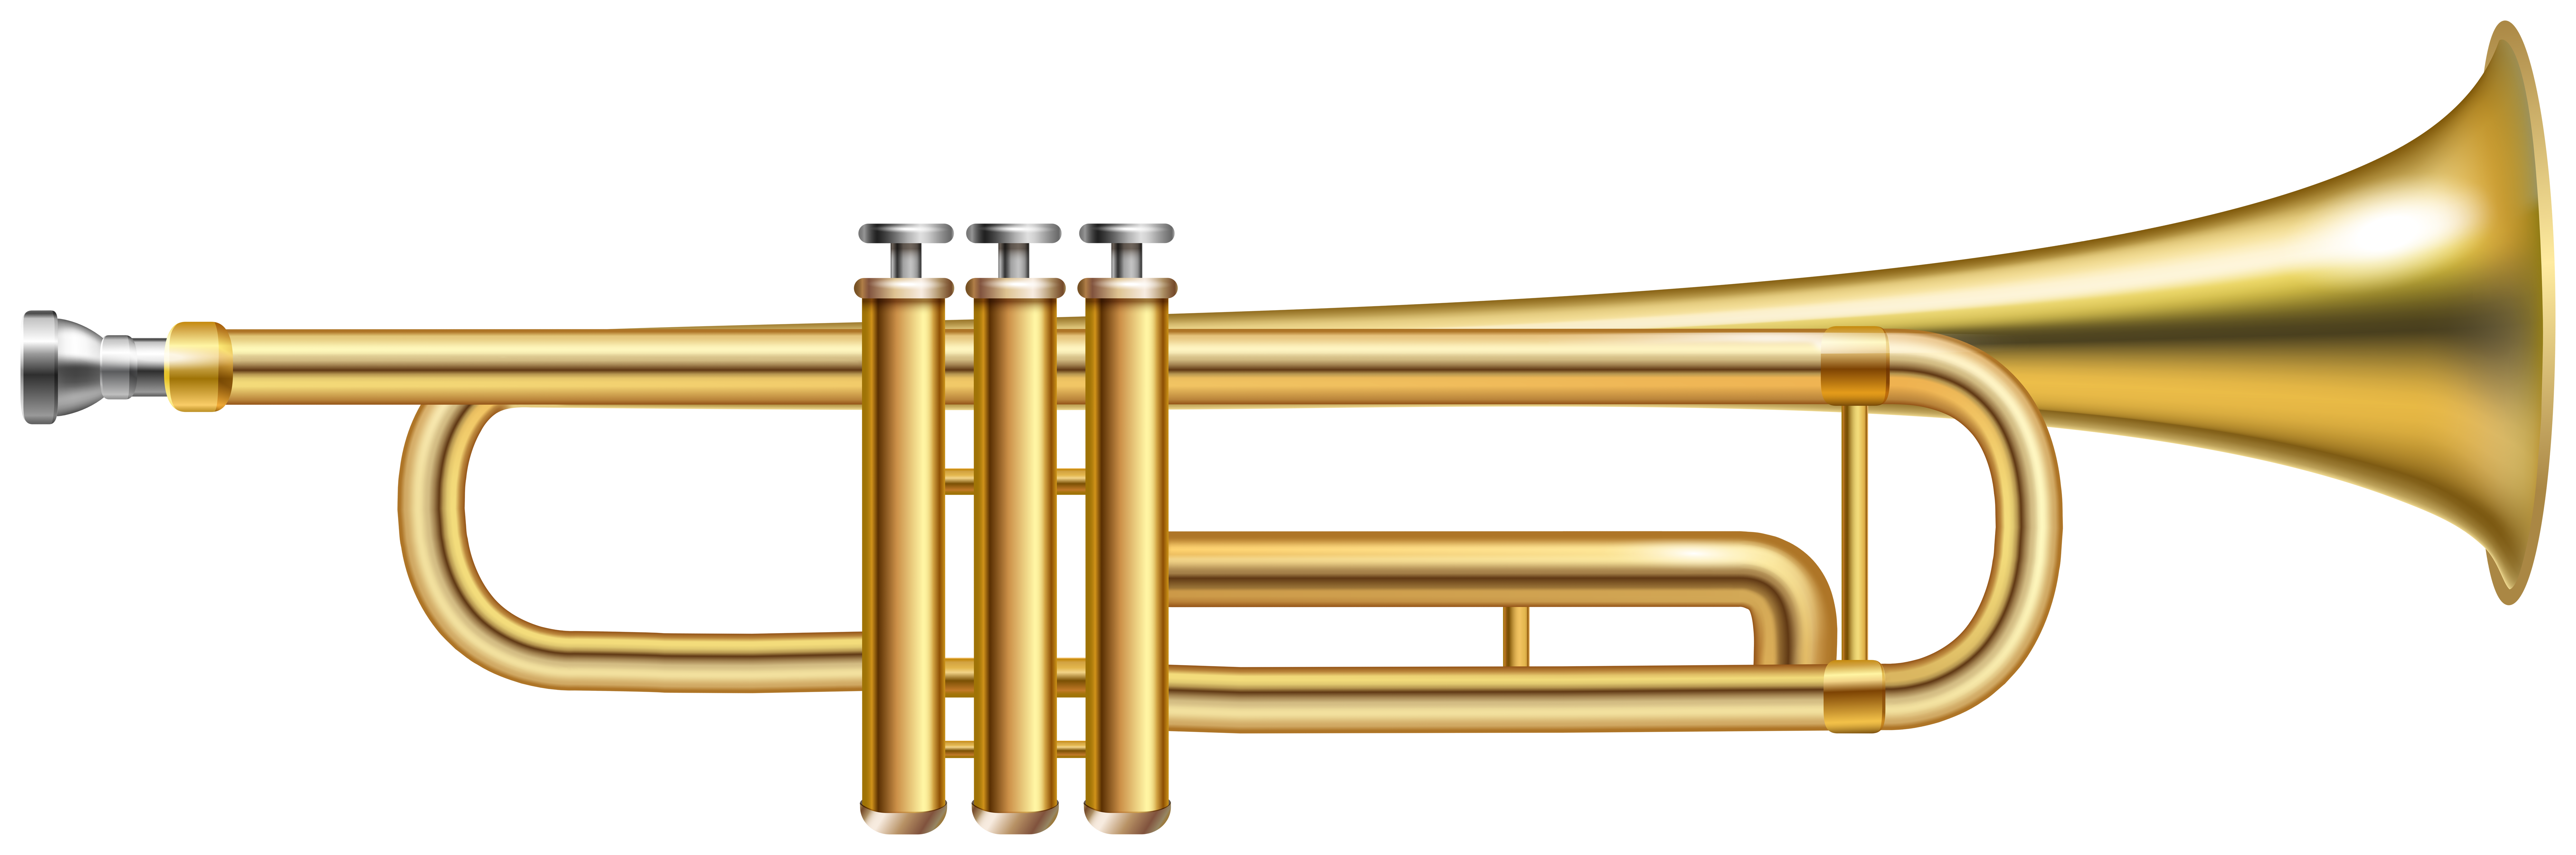 trumpet transparent image gallery yopriceville high quality images and transparent png #29554